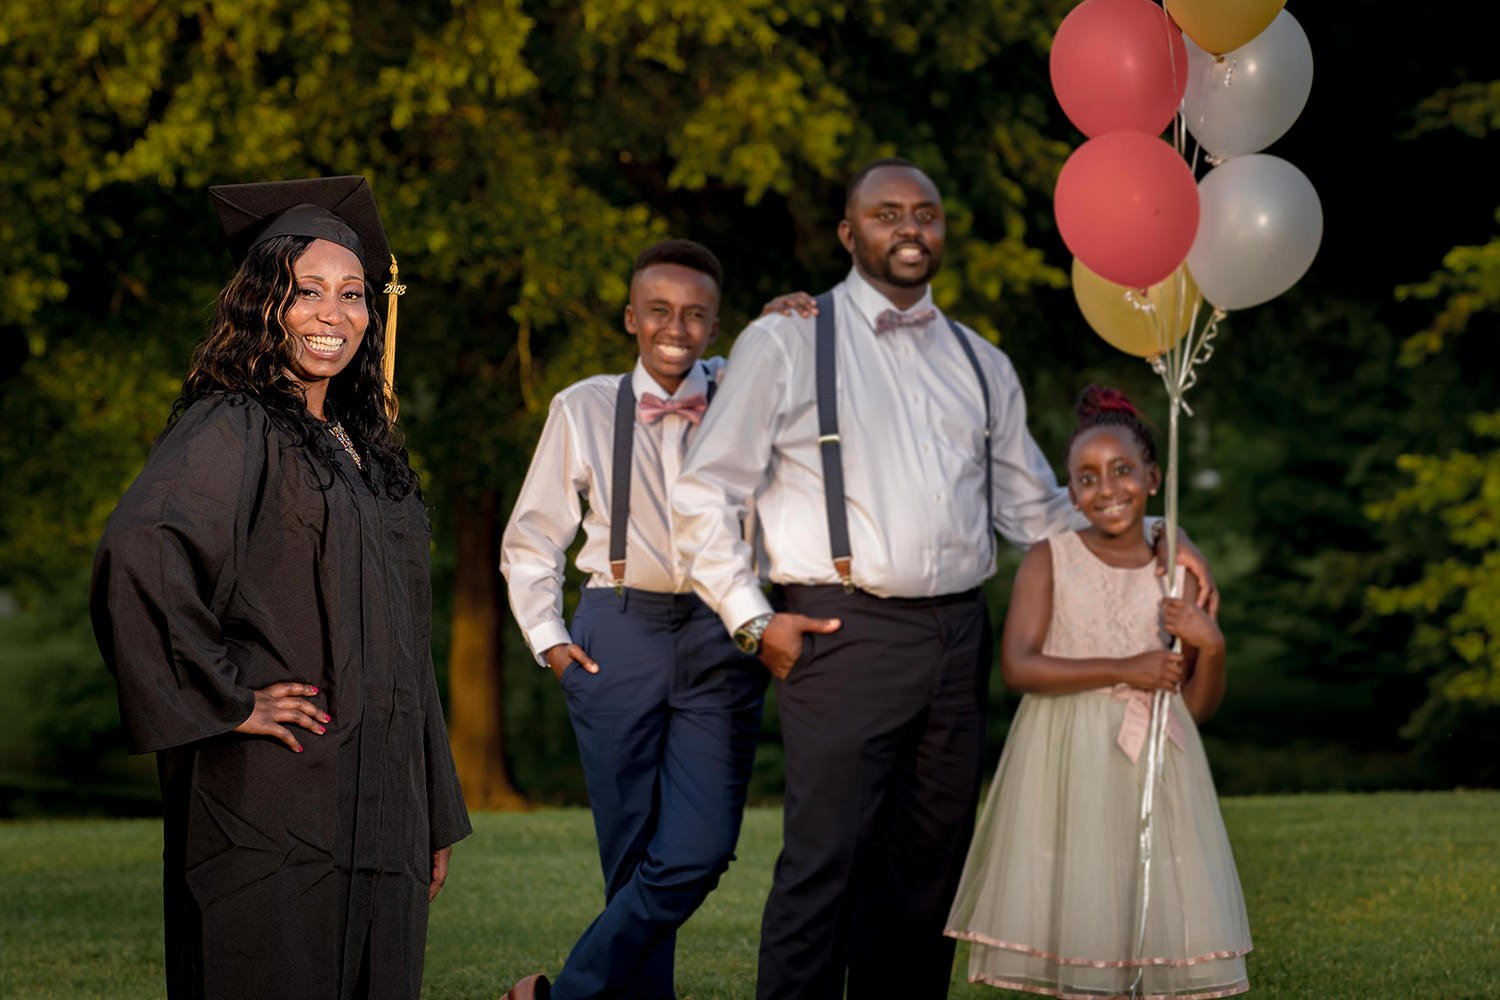 Family Portrait | Raleigh wedding photographer